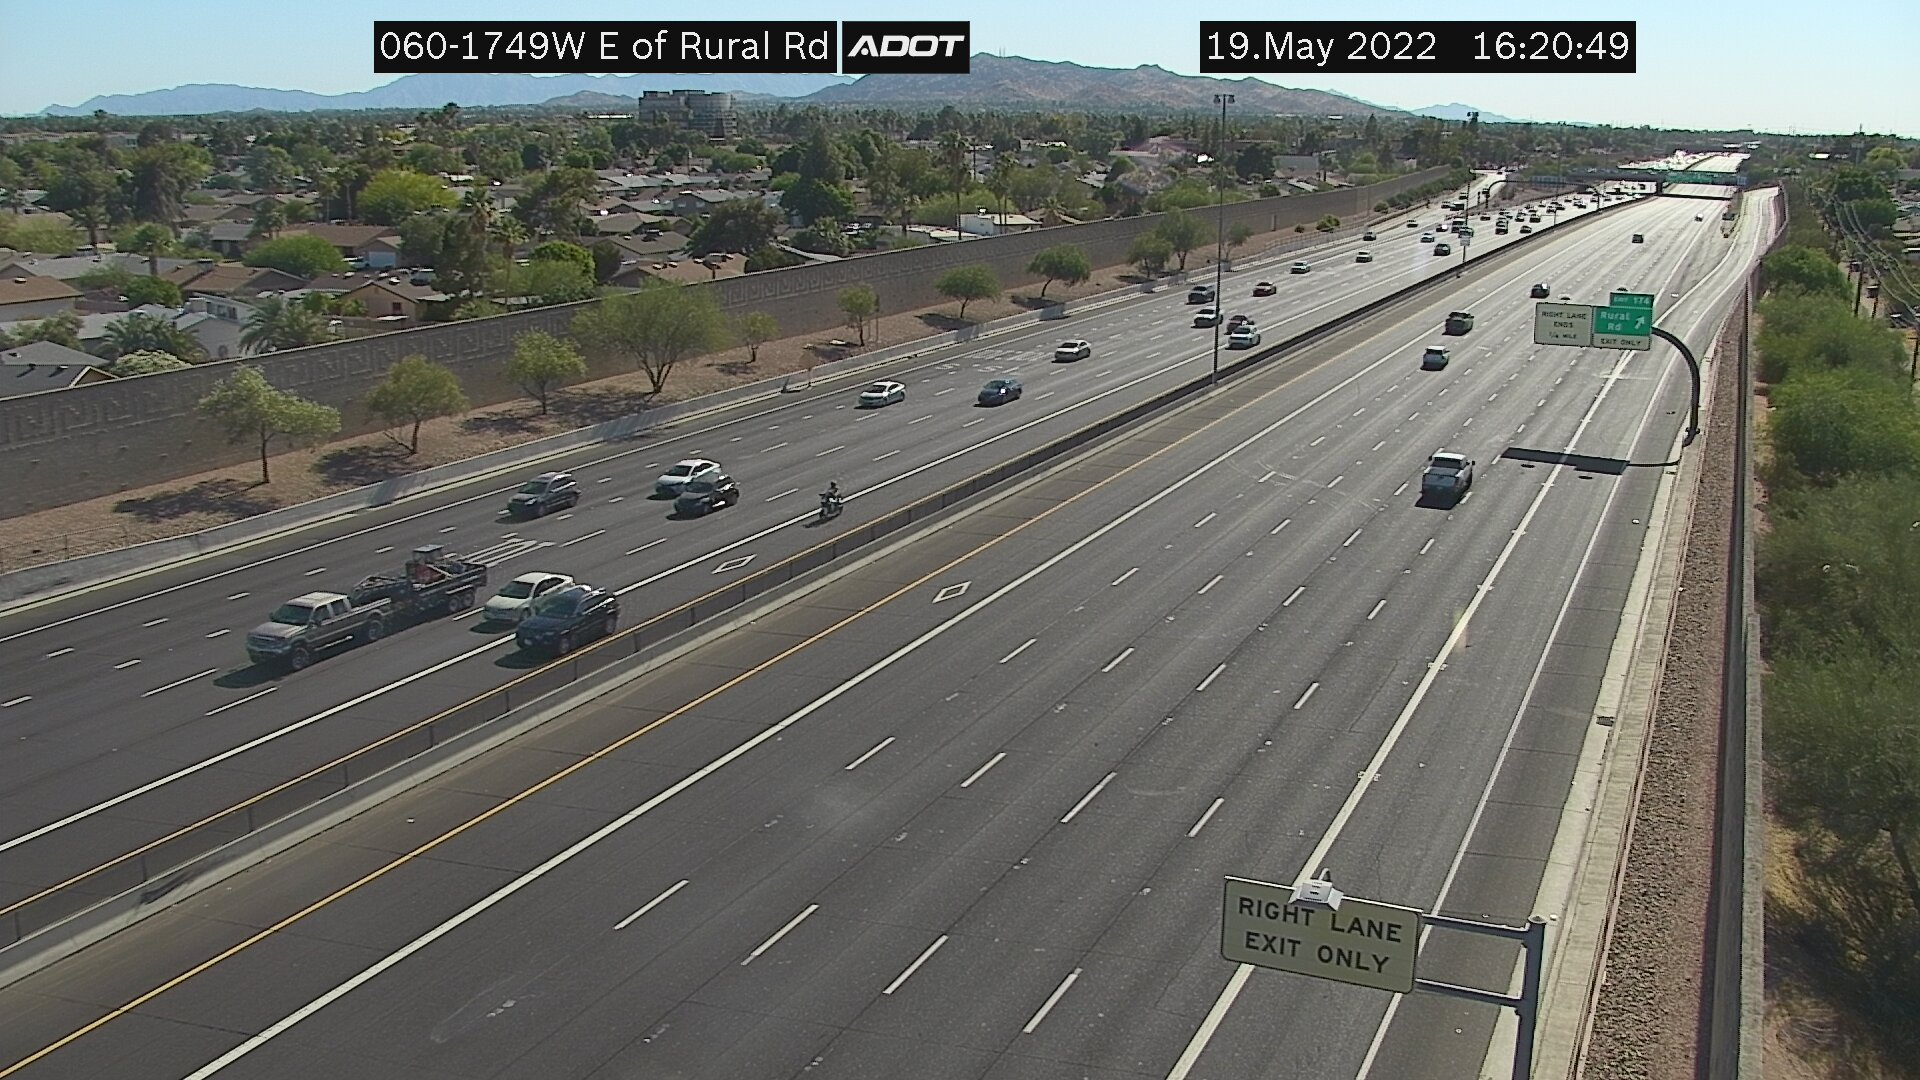 E of Rural WB (US60) (173) - Phoenix and Arizona